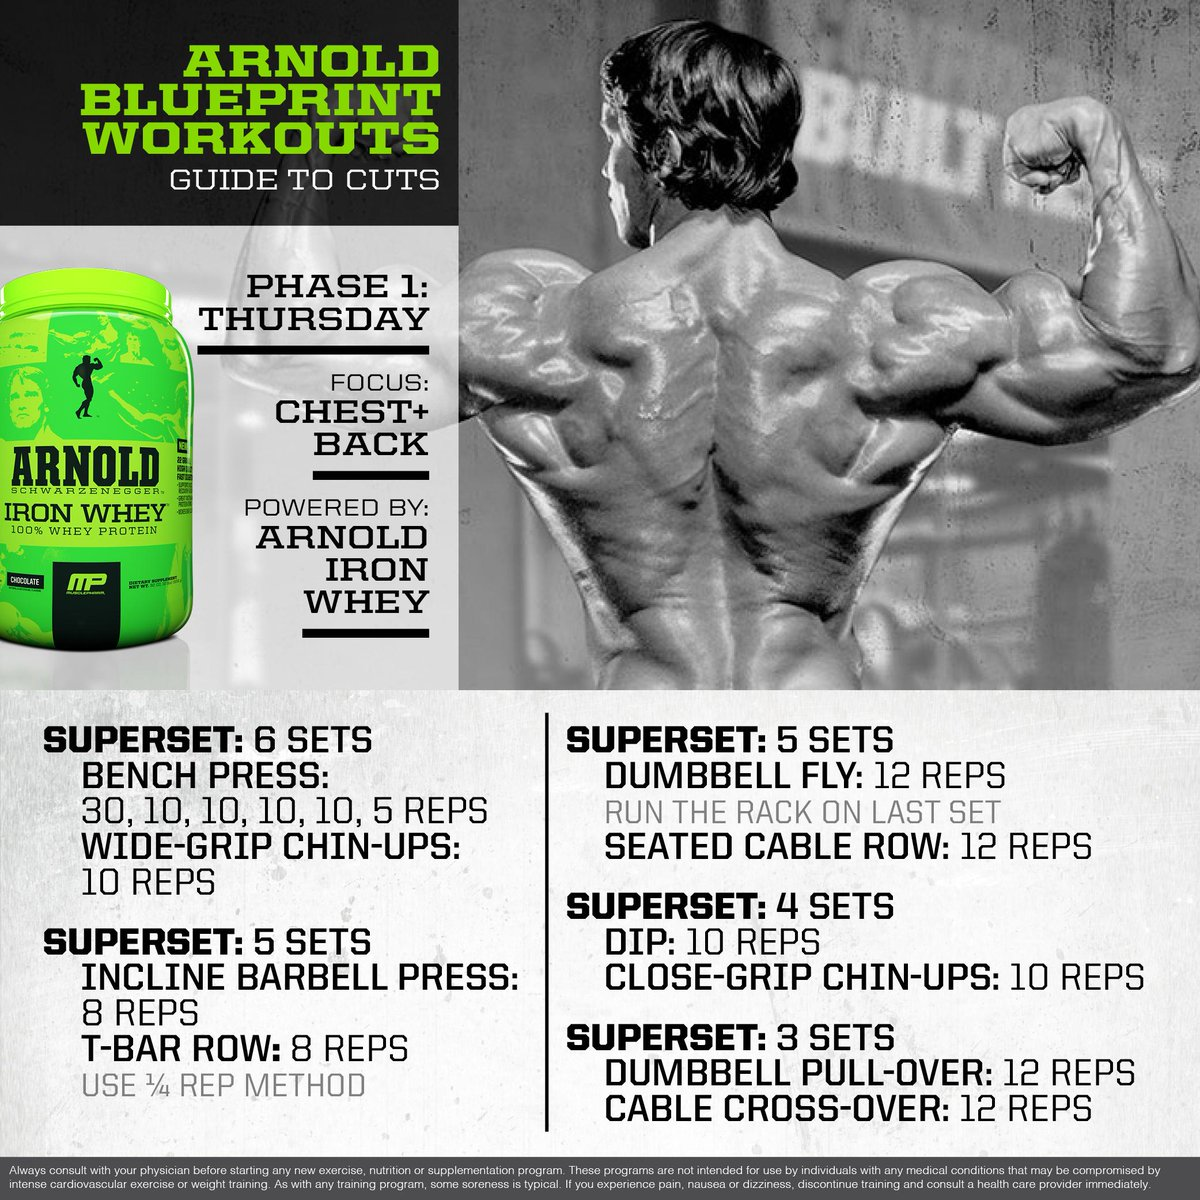 Musclepharm on twitter mp workout of the day arnold musclepharm on twitter mp workout of the day arnold schwarzenegger blueprint to cut chestback workout powered by ironwhey httpte9mvci6kpn malvernweather Choice Image